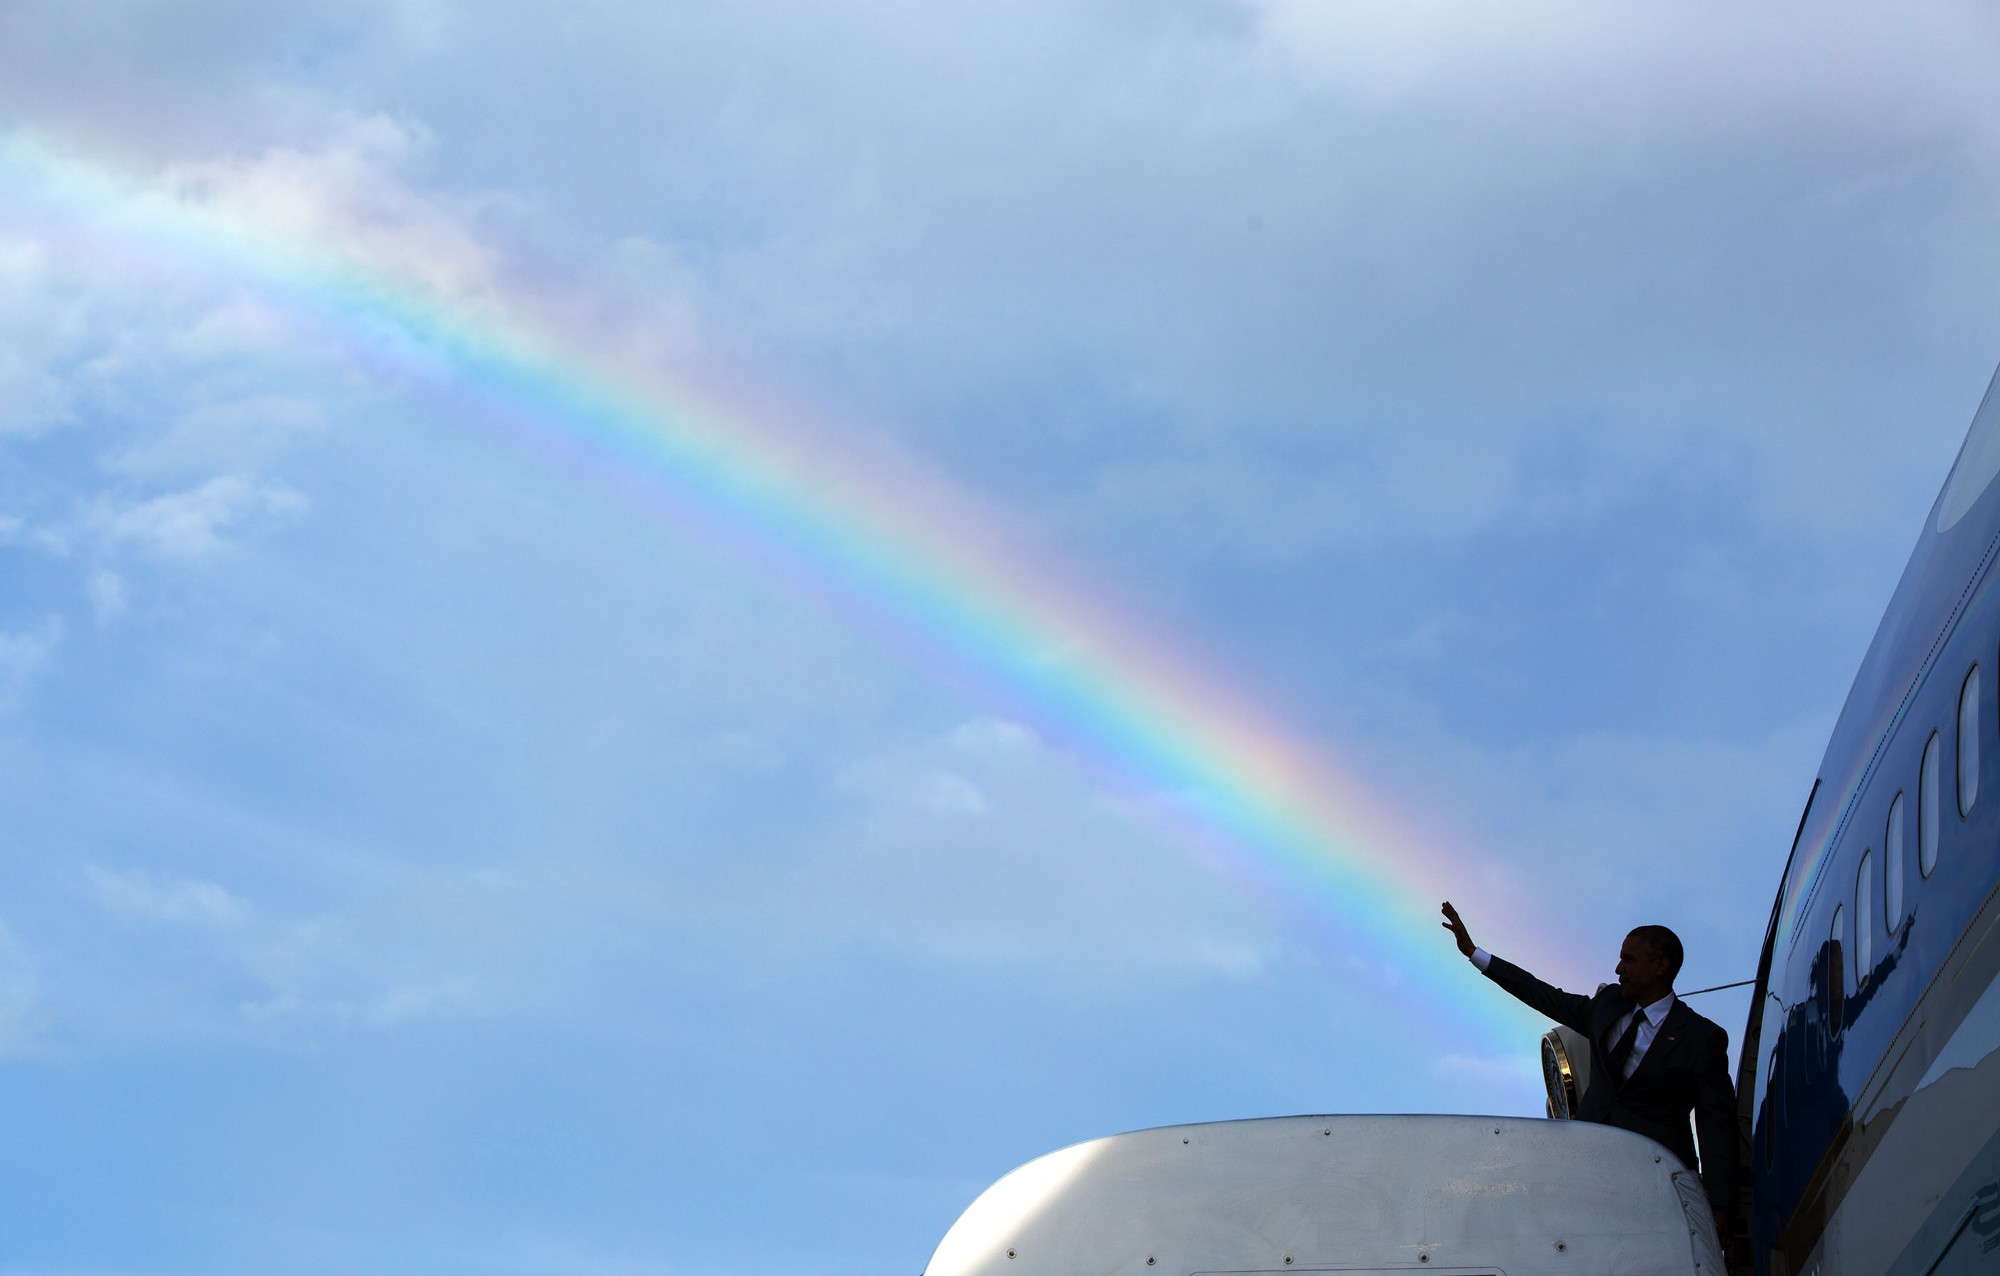 The story behind President Obama Waving A Rainbow in Jamaica